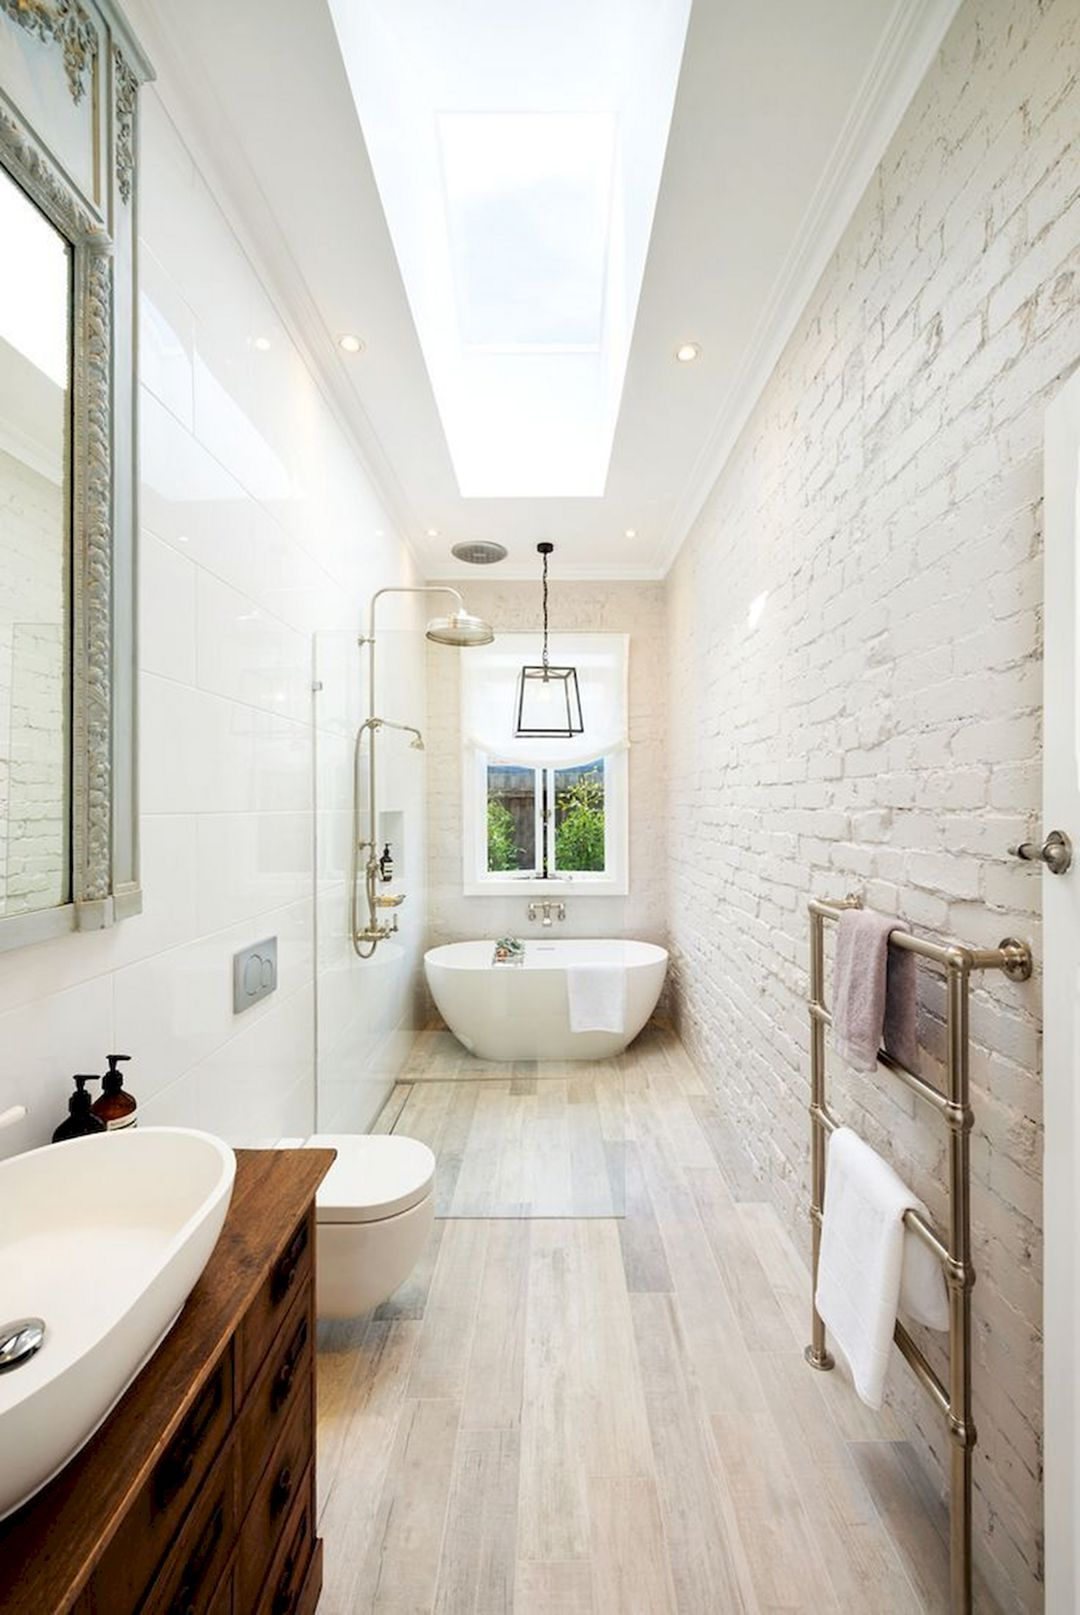 Gorgeous 43 Long Narrow Bathroom Design Ideas You Never Seen ... on narrow shower ideas, family room design ideas, narrow bathroom shelving ideas, narrow bathroom sink ideas, narrow half bath designs, narrow front porch design ideas, narrow bathroom ideas on a budget, small narrow bathroom remodeling ideas, narrow bathroom design plans, long narrow bathroom ideas, washroom design ideas, small bathroom tile ideas, rectangle bathroom decorating ideas, narrow bathroom closet ideas, den design ideas, floor design ideas, small bathroom shower ideas, narrow master bathroom design, small bathroom decorating ideas,